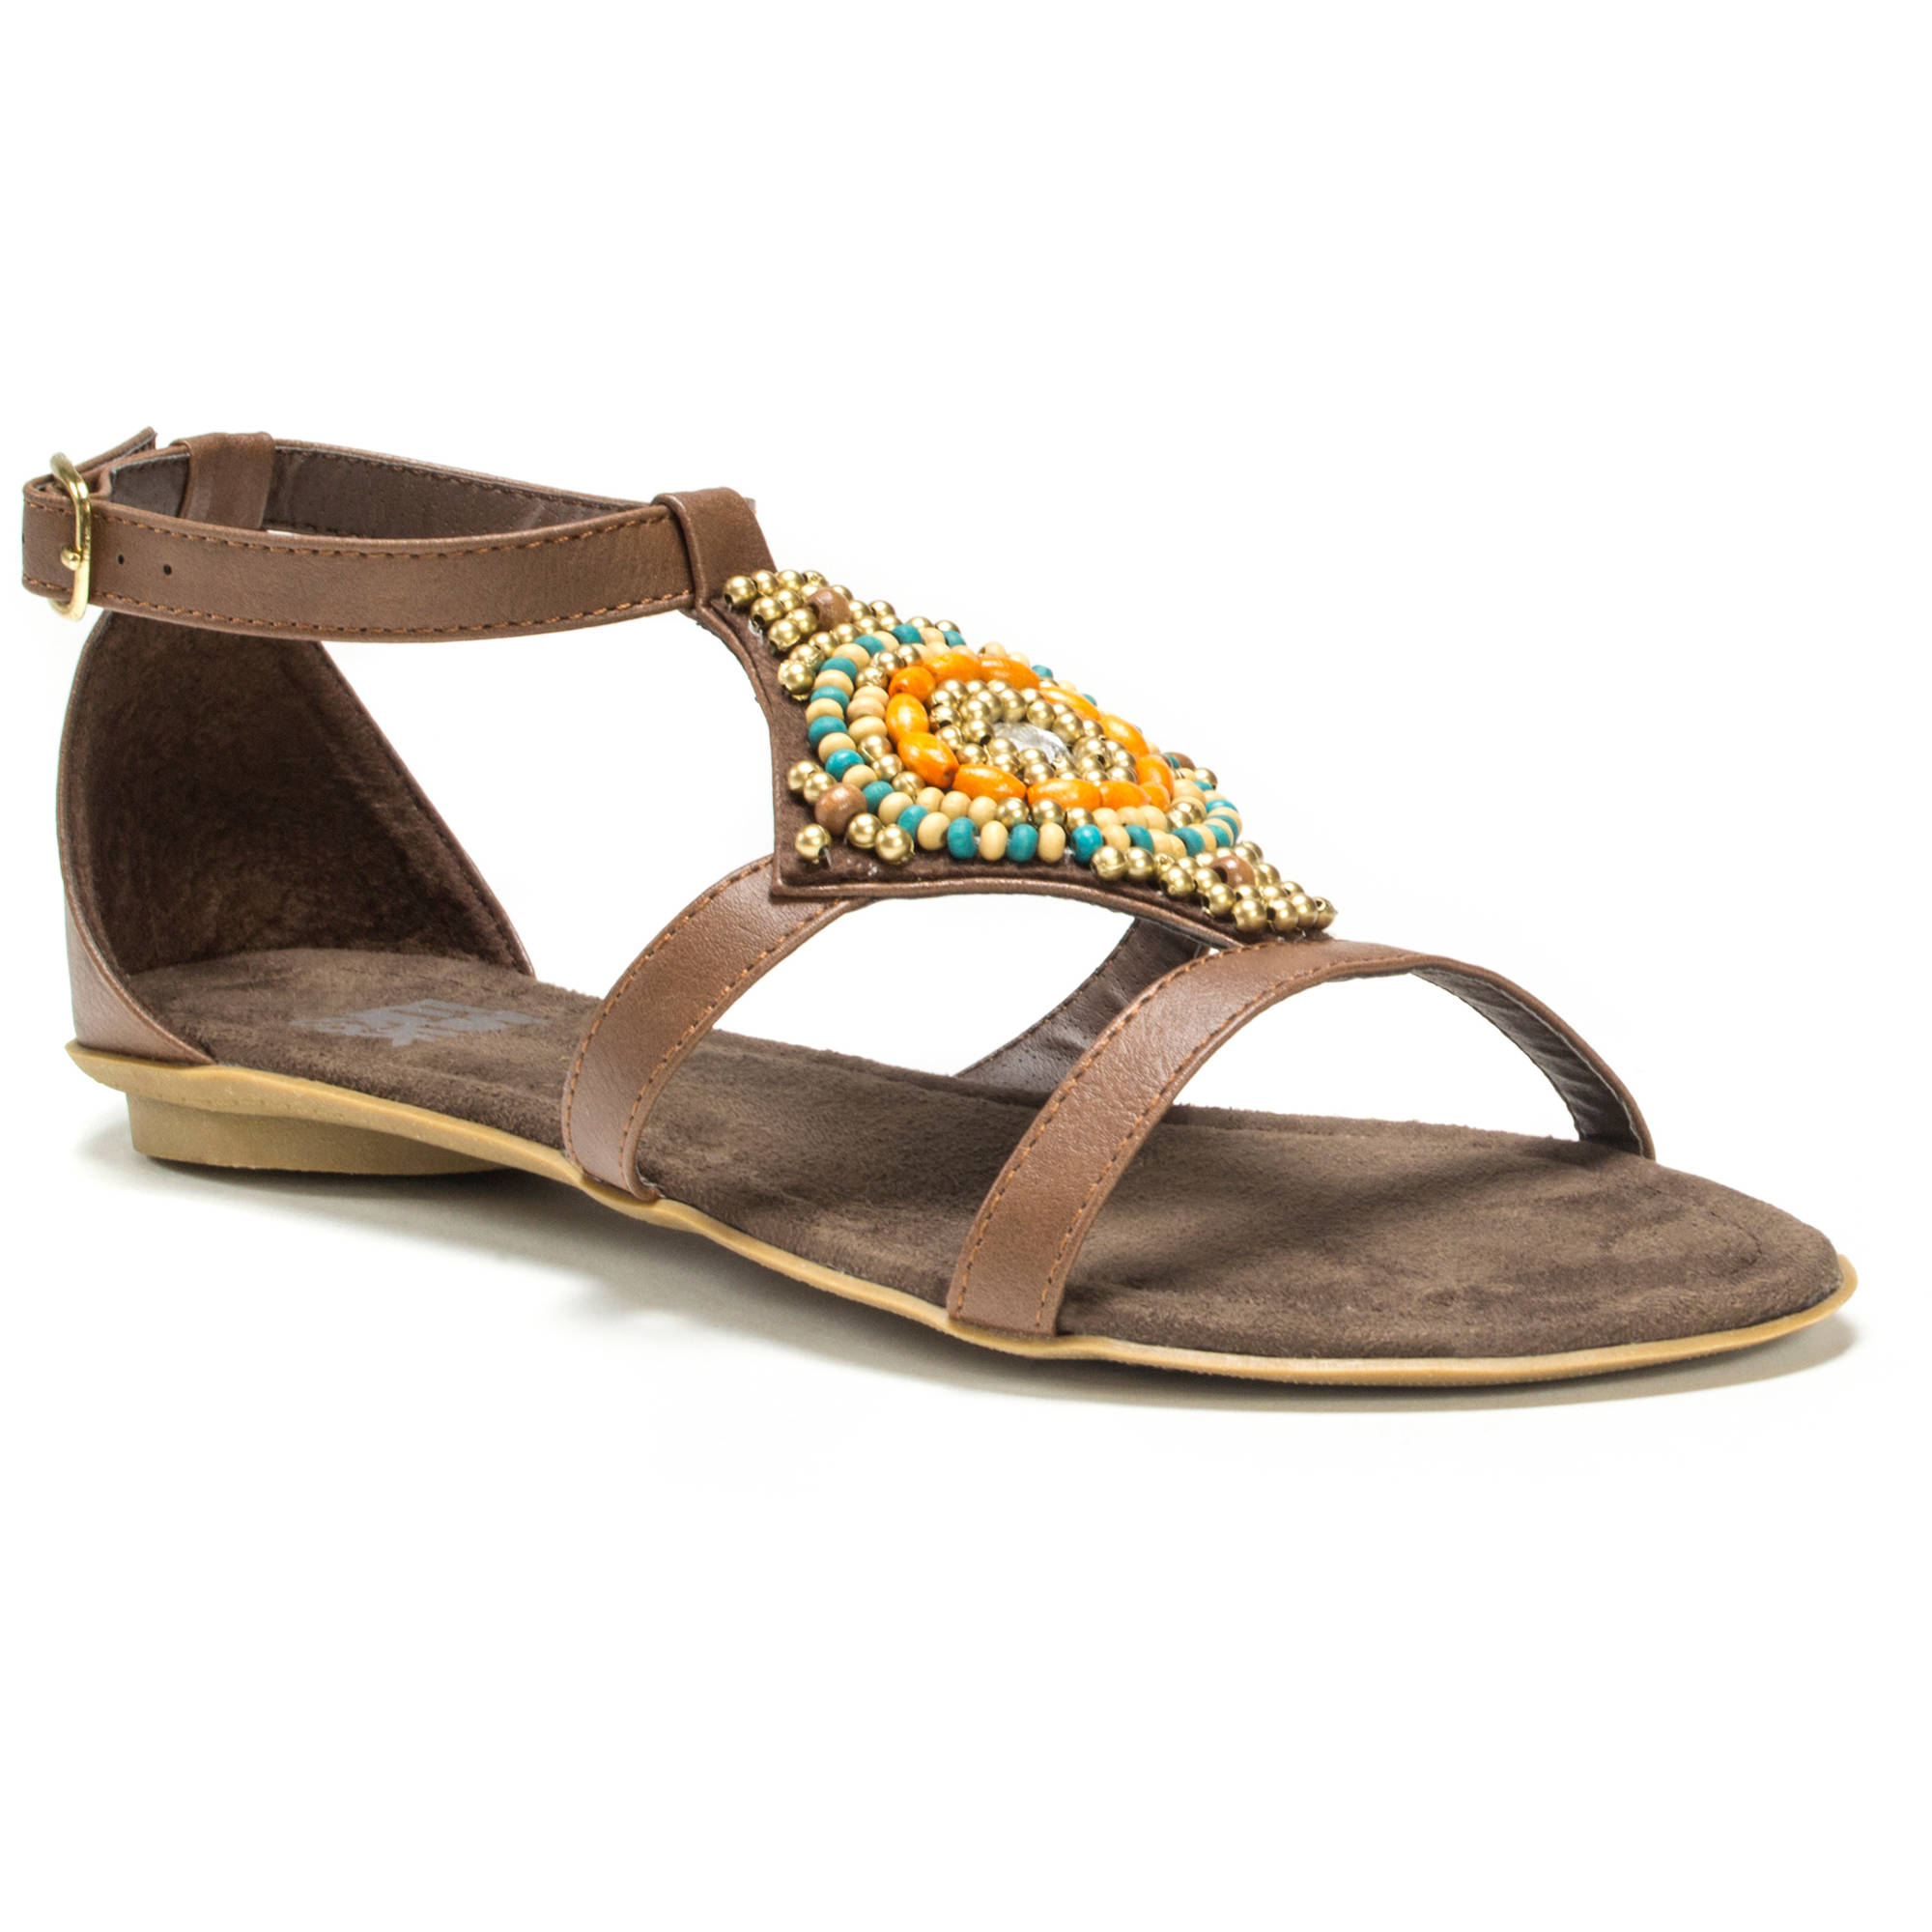 MUK LUKS Women's Lisa Beaded Sandals